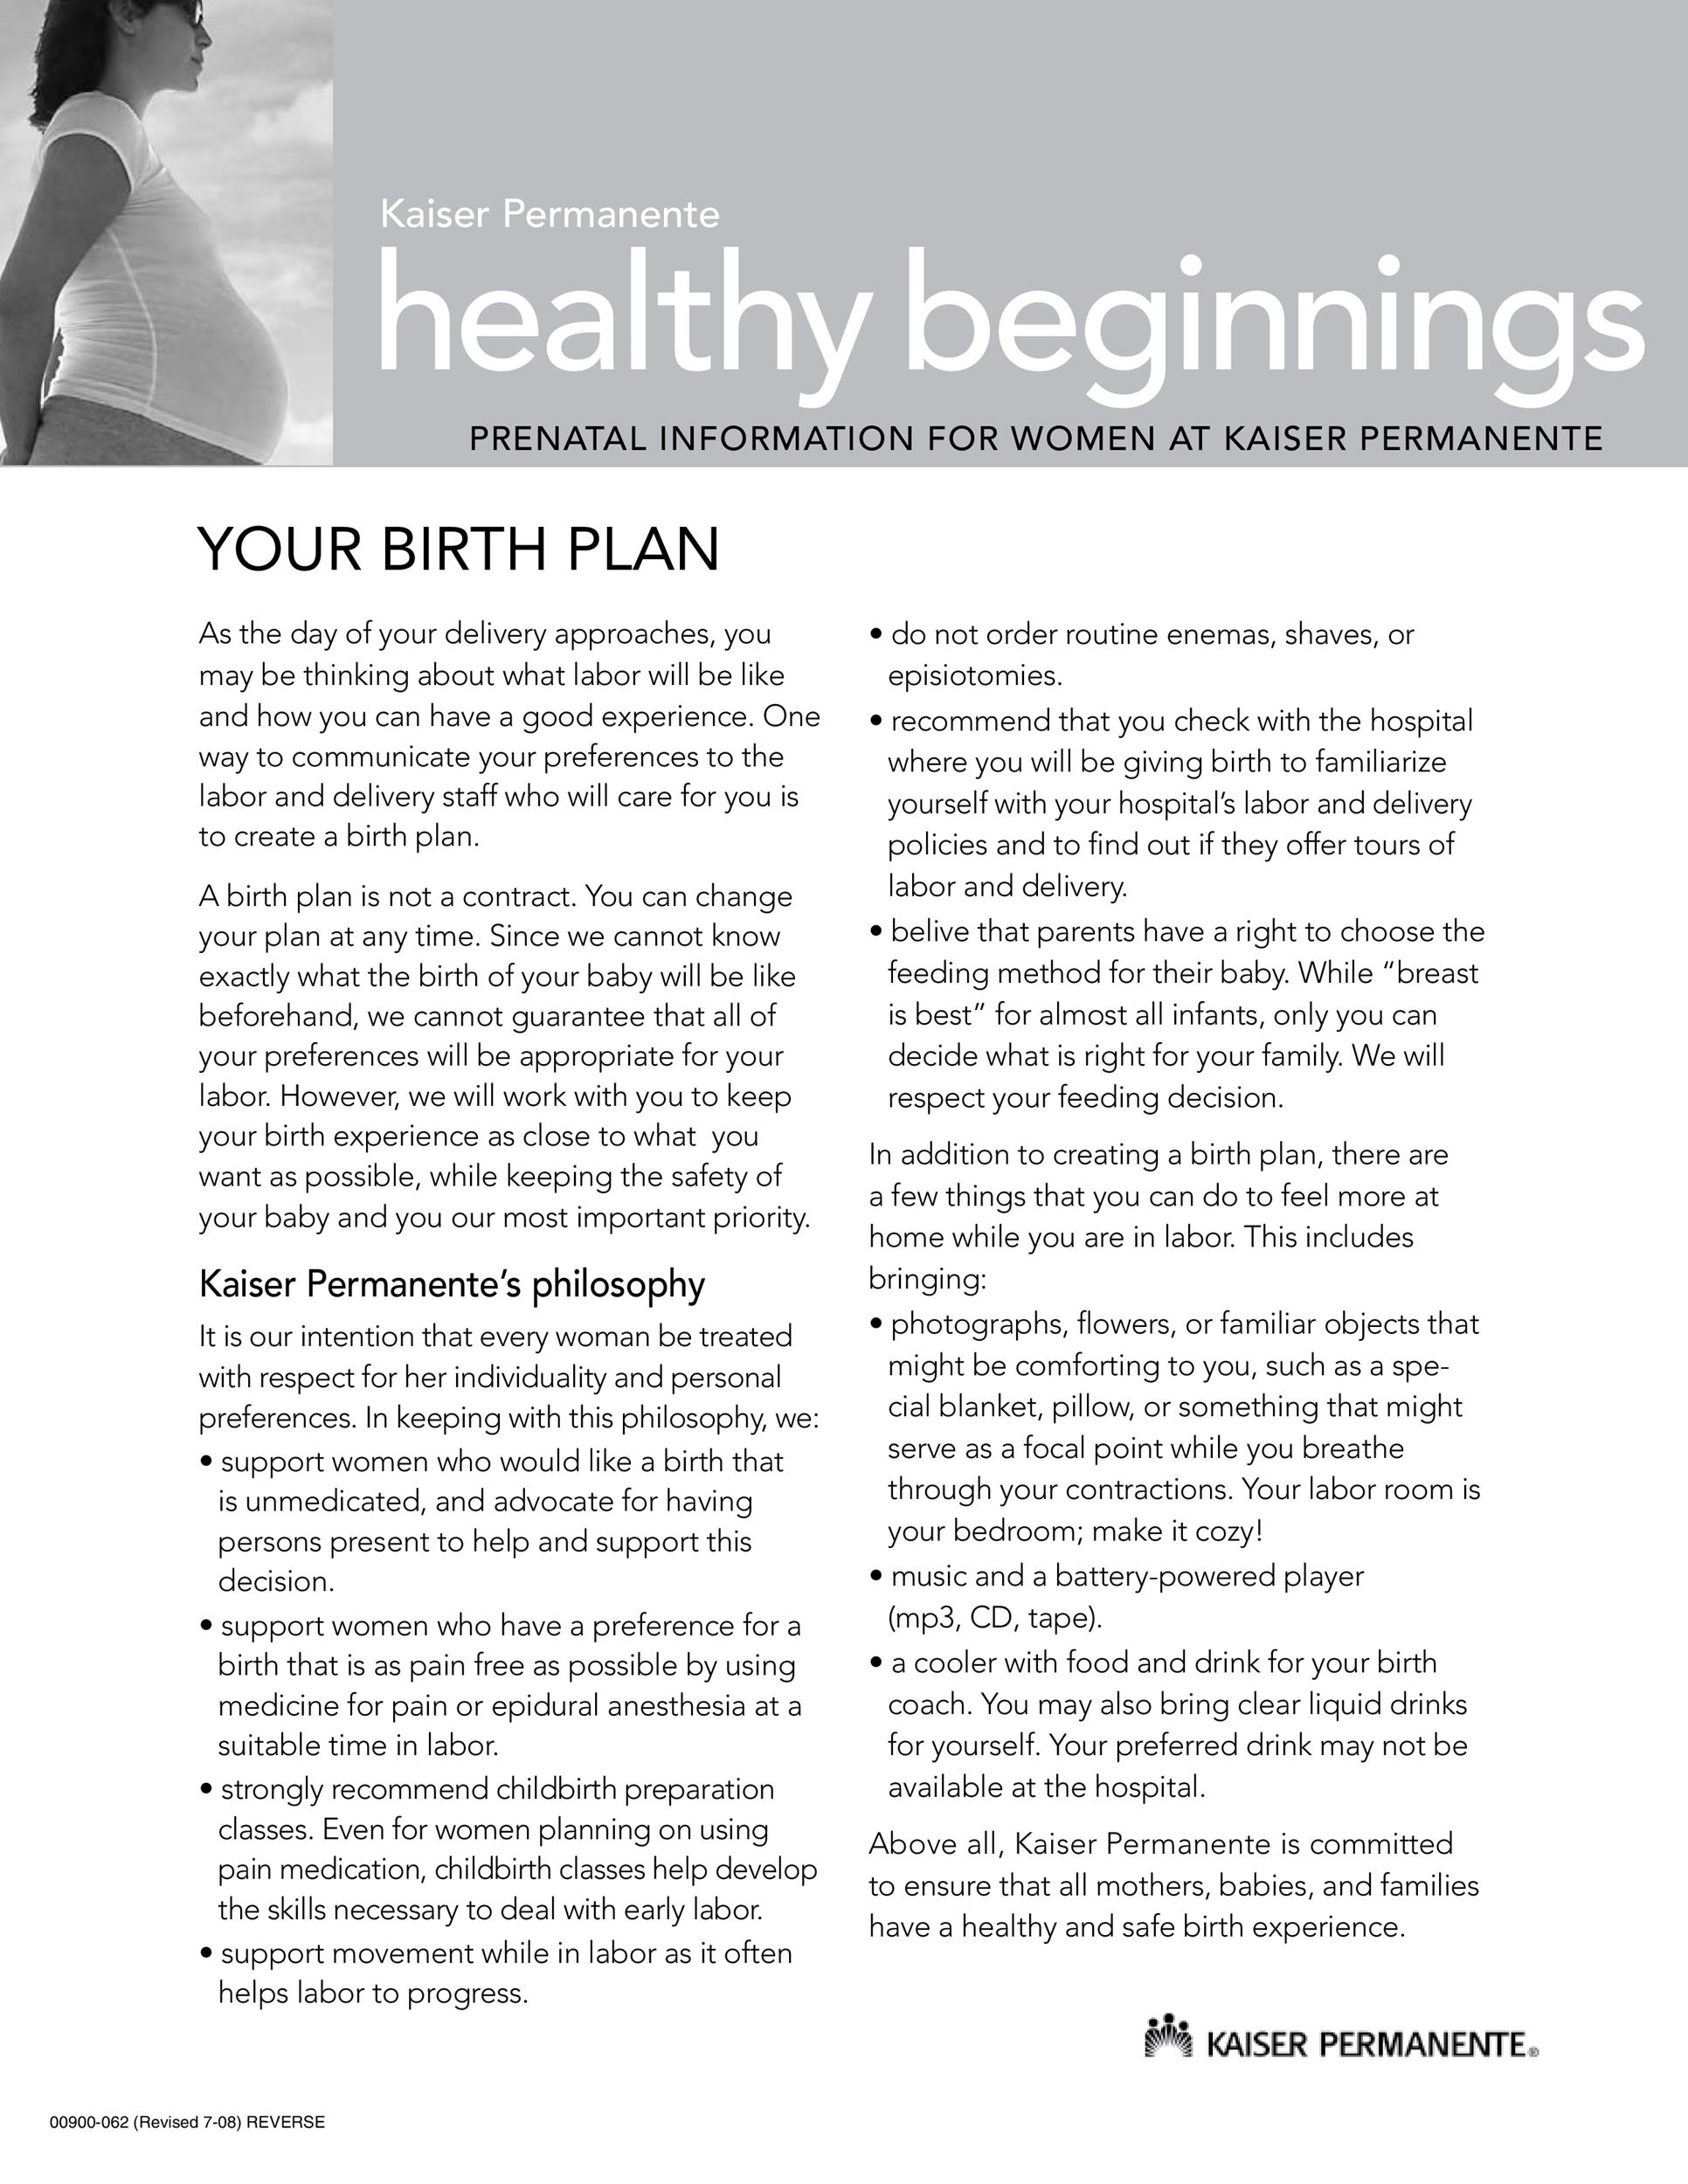 47 Printable Birth Plan Templates Birth Plan Checklist – Sample Birth Plan